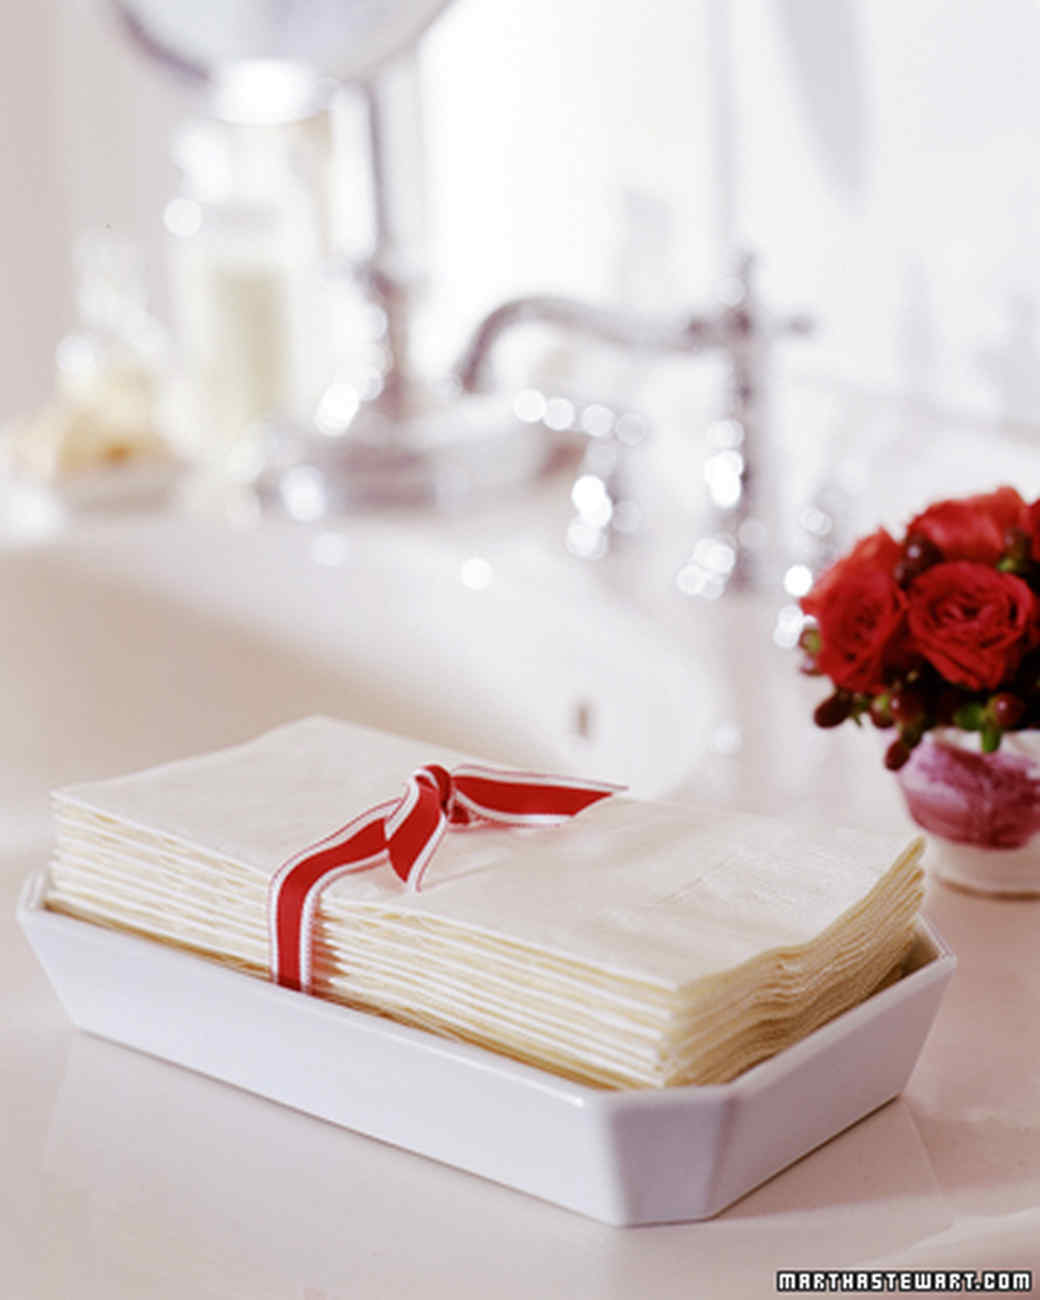 Bathroom Napkins prepping for houseguests | martha stewart